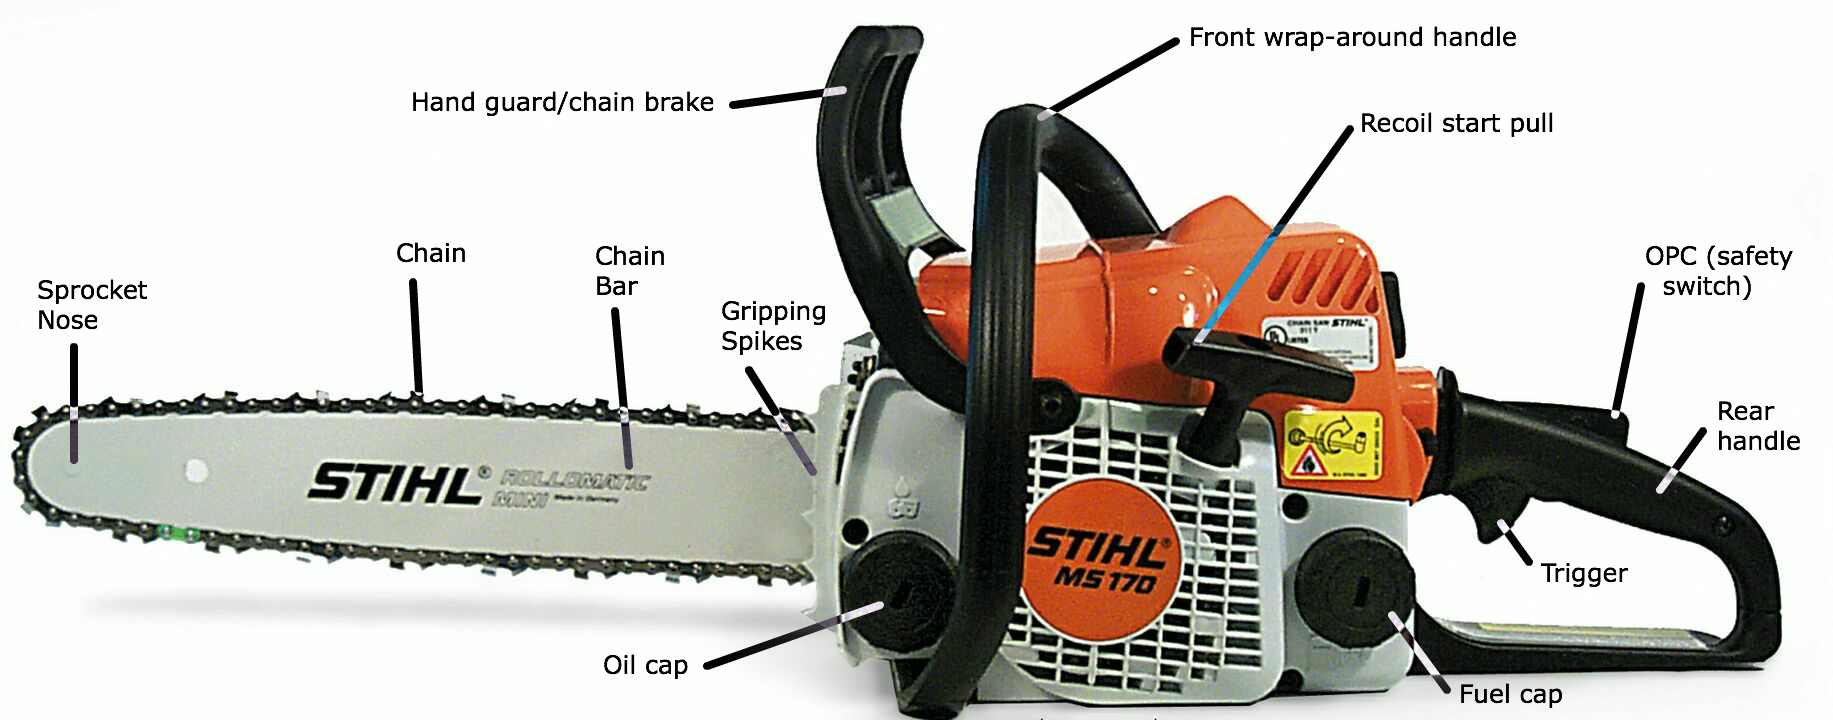 A pictorial guide to the main features of a chainsaw mowdirect some chainsaws offer tool less chain tensioning this is usually carried out with a knob as in the image below keyboard keysfo Images